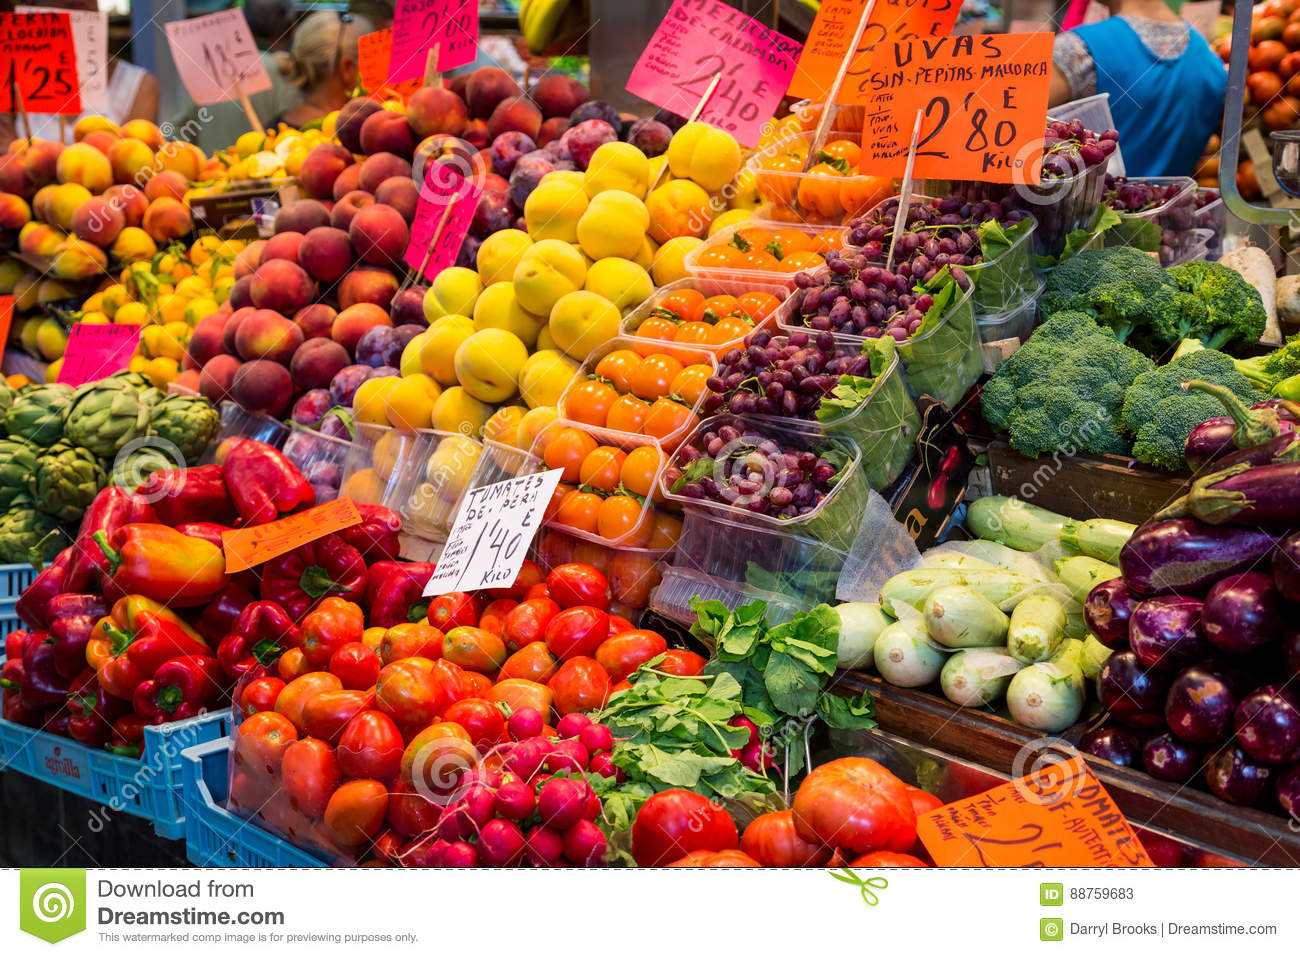 Fruits and Vegetables in Spanish Market